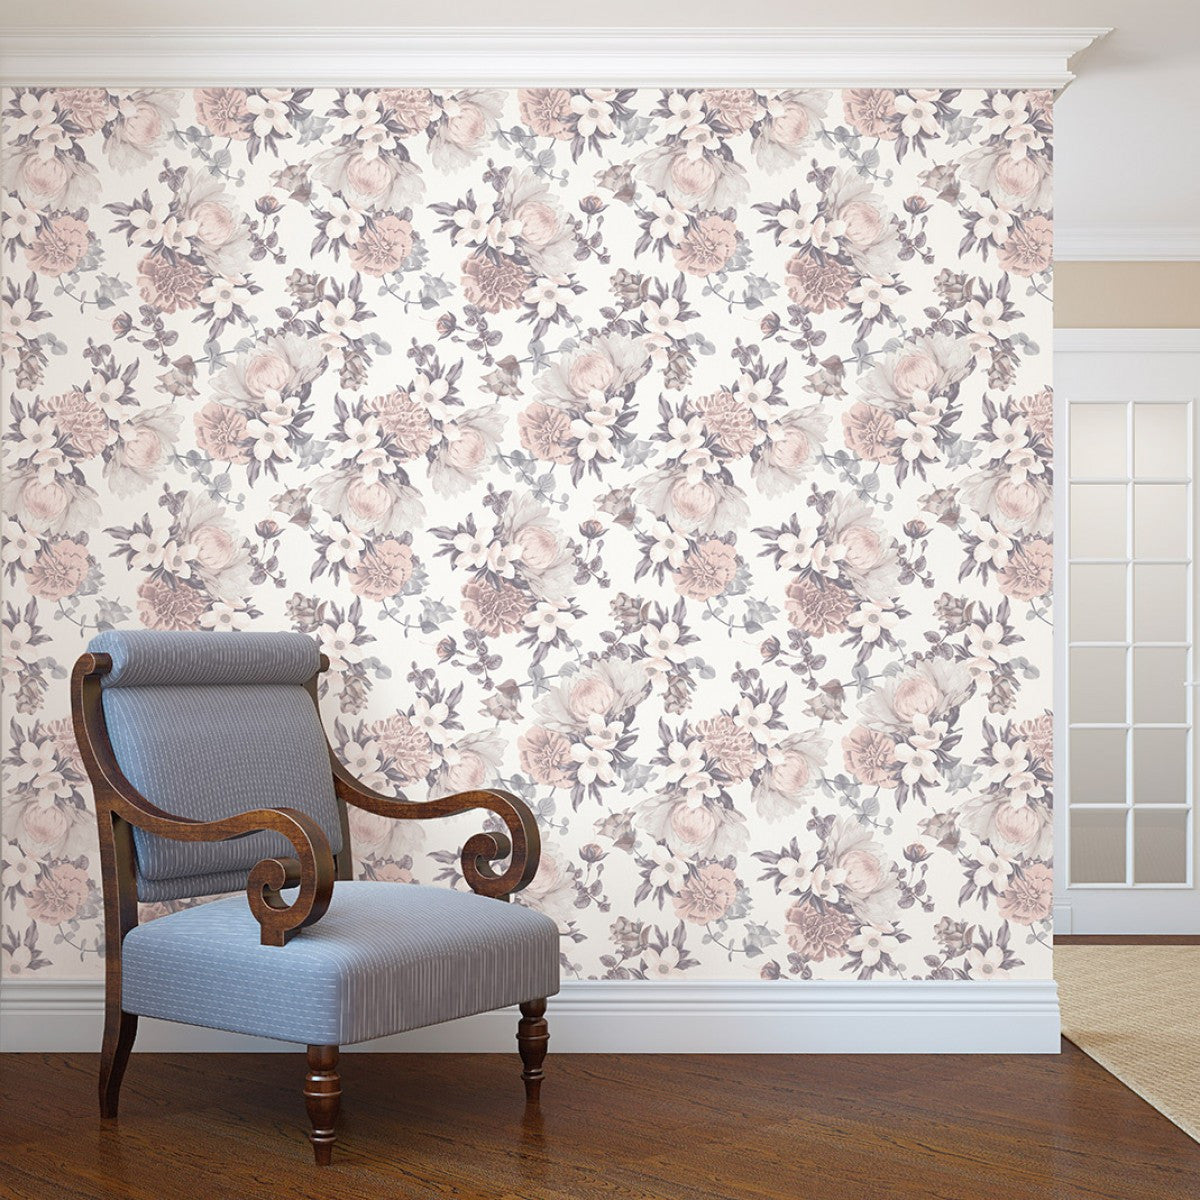 Adhesive Wall Paper botanical self adhesive wallpaper in blossom designtempaper